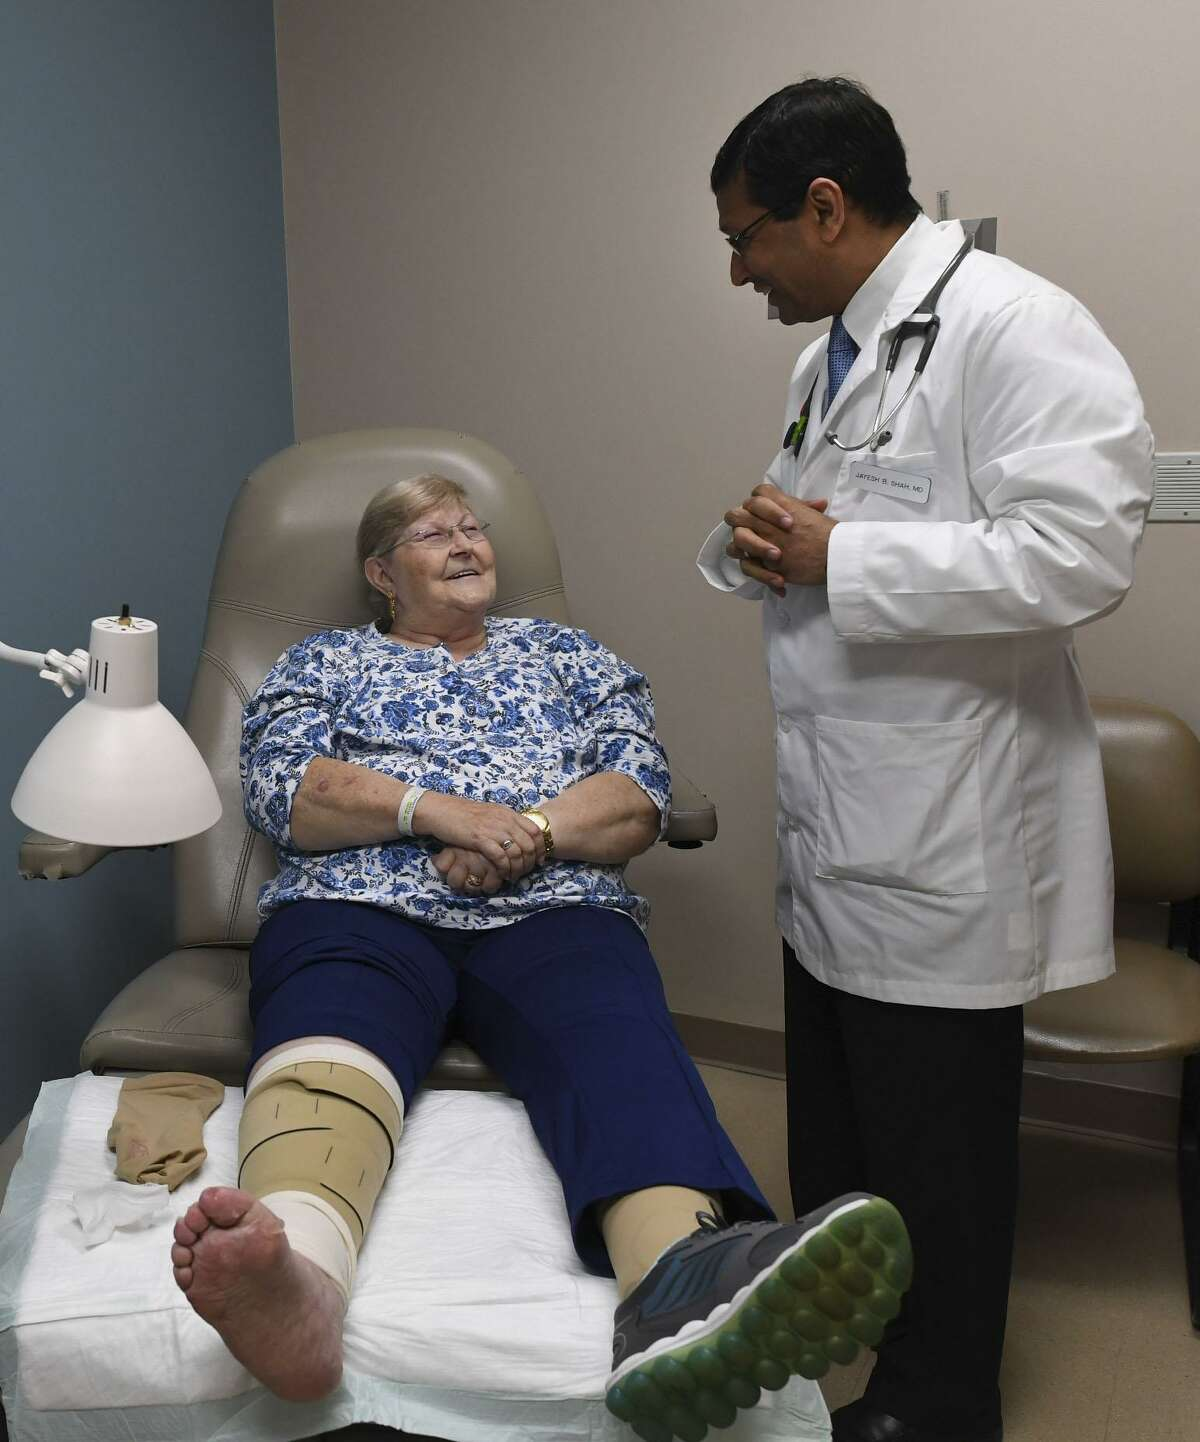 JoAnn Sanchez chats with Dr. Jayesh Shah about her foot wounds at the Wound Care Center at Northeast Baptist Hospital. Shah used a dermaPACE shockwave system to help promote healing of her wounds.